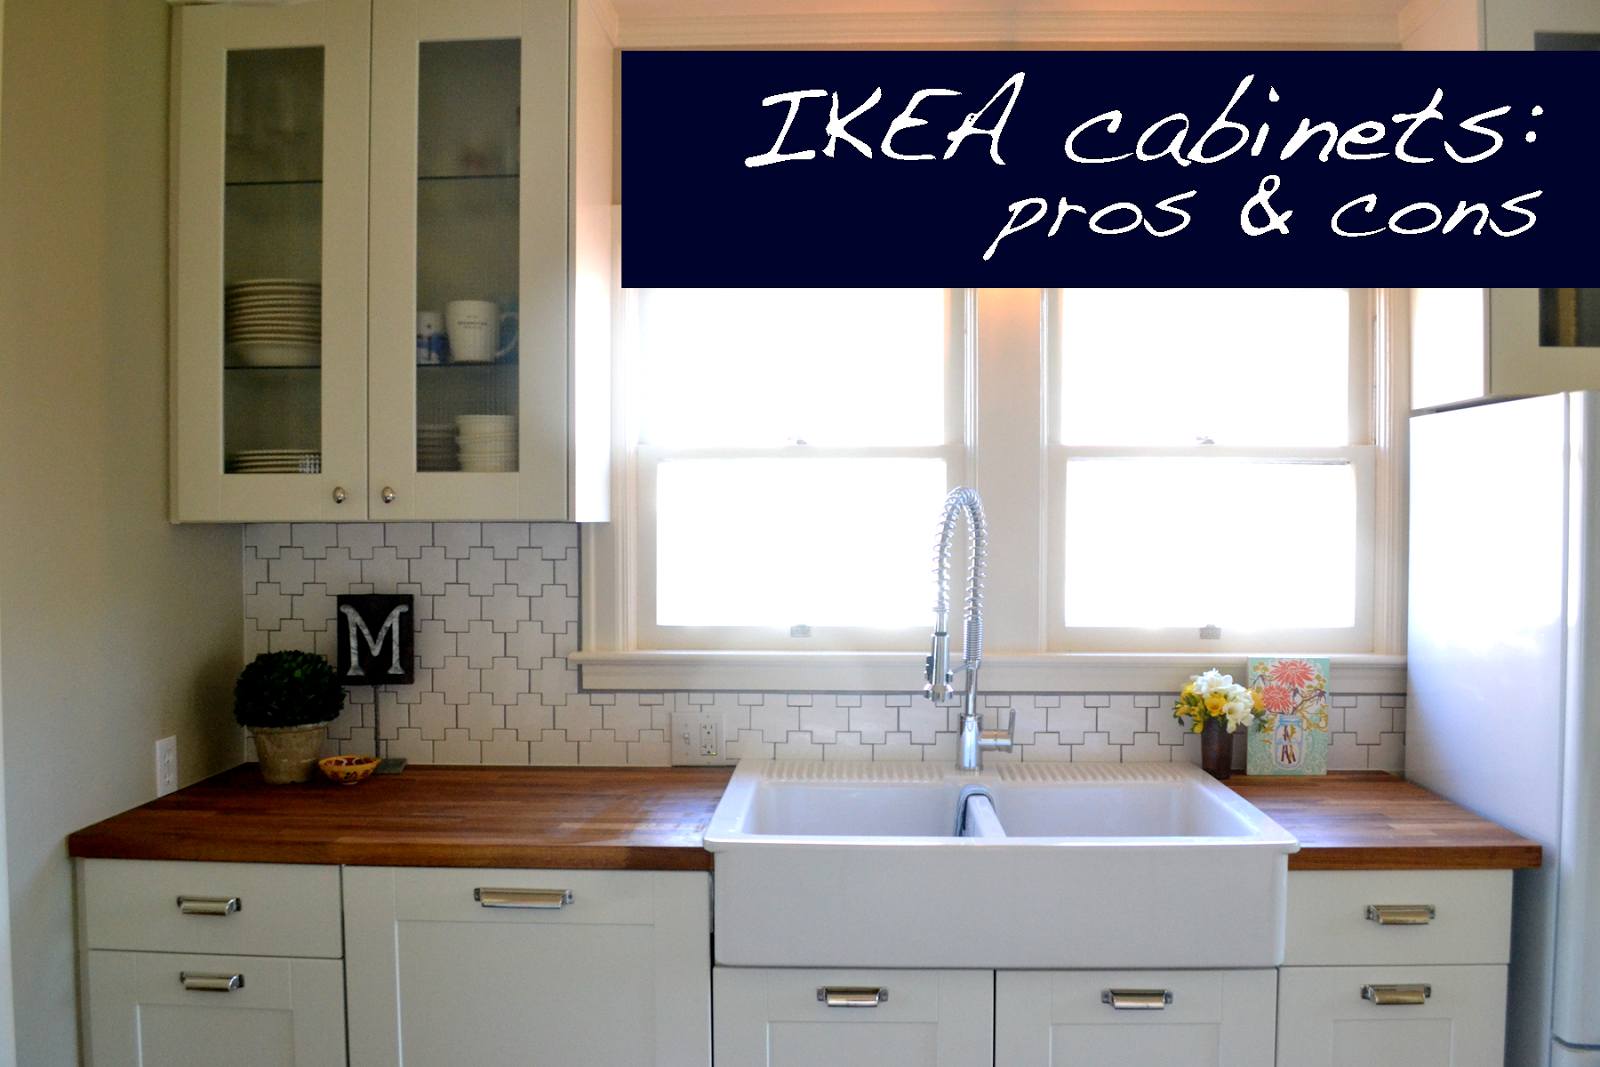 Ikea Kitchen Cabinet S A Home In The Making Renovate Pros And Cons Of Ikea Cabinets